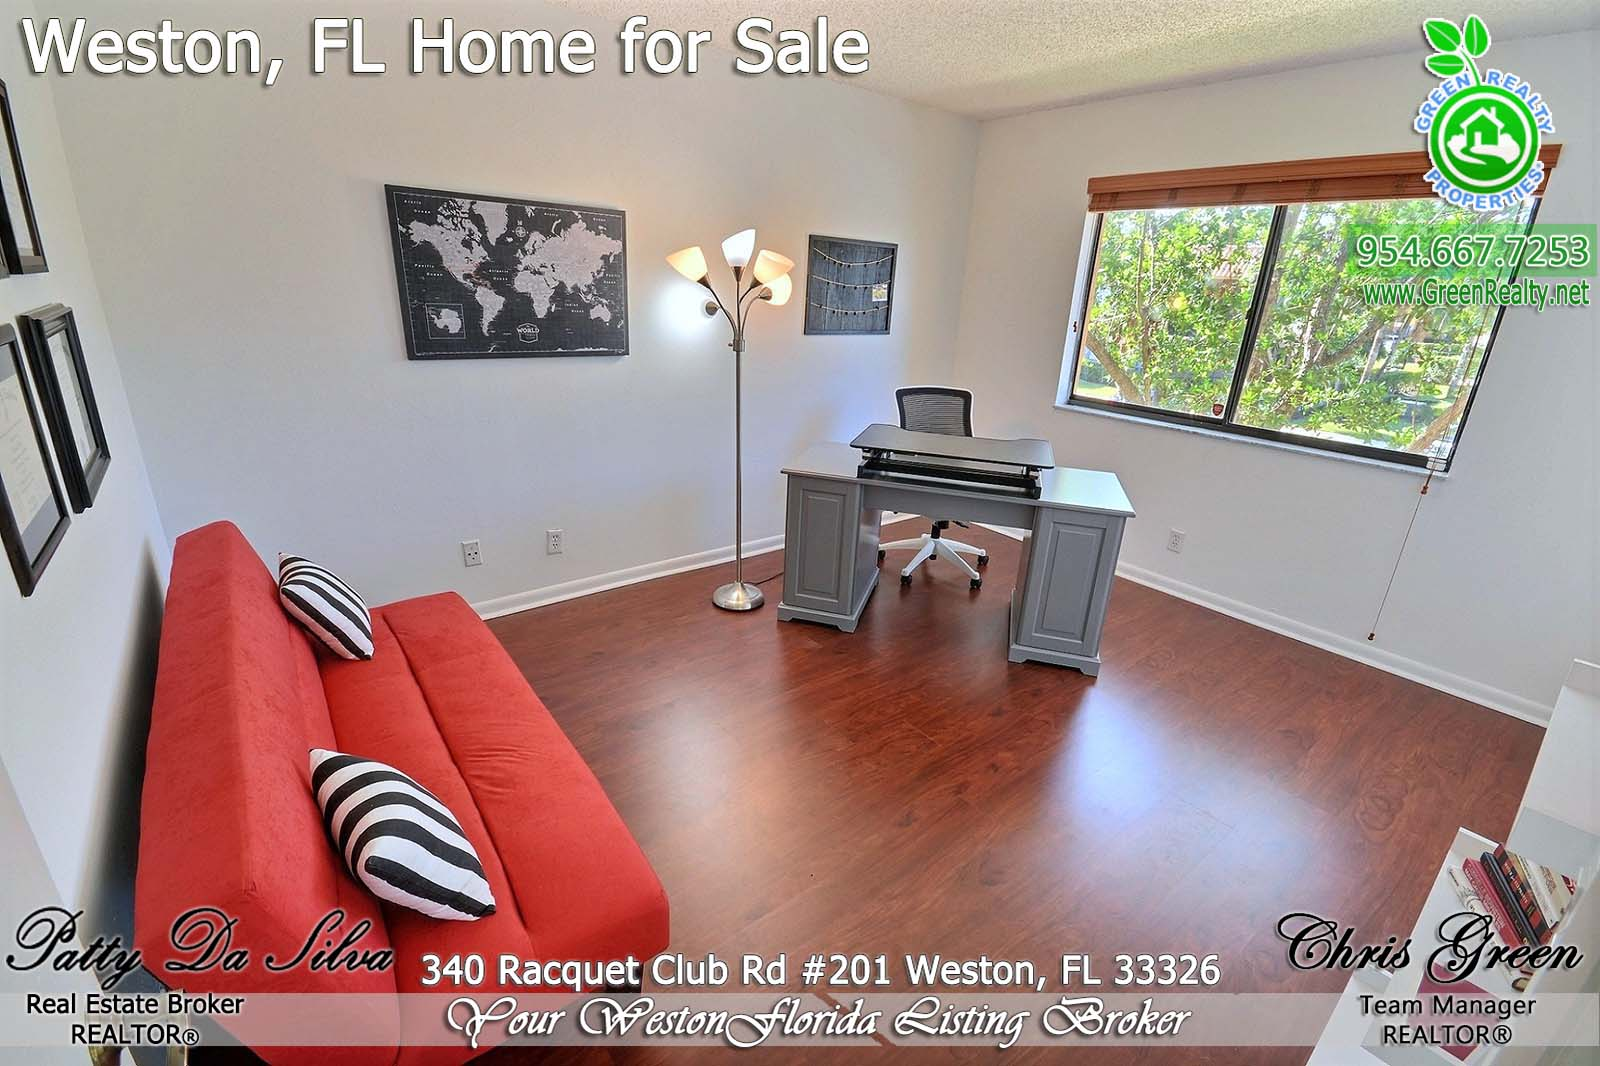 18 Real Estate Agents in Weston Florida